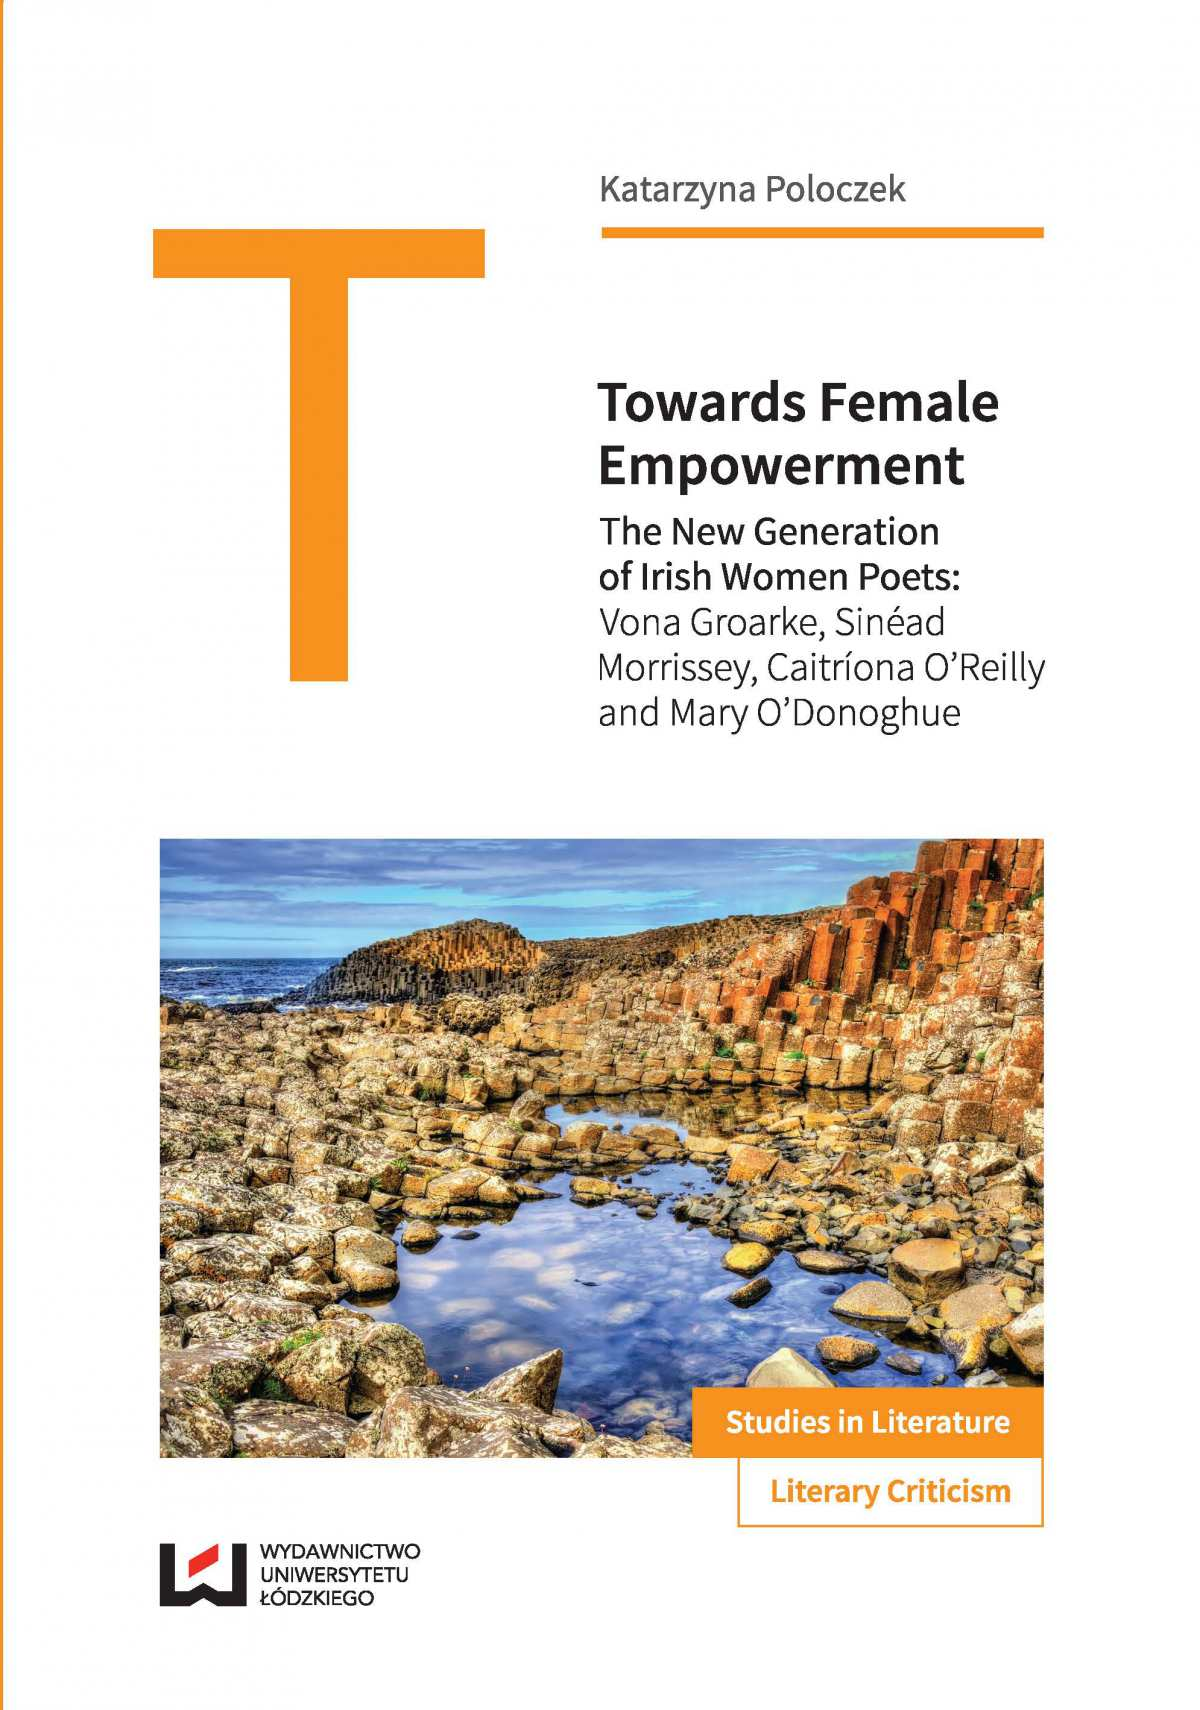 Towards Female Empowerment. The New Generation of Irish Women Poets: Vona Groarke, Sinéad Morrissey, Caitriona O'Reilly and Mary O'Donoghue - Ebook (Książka PDF) do pobrania w formacie PDF